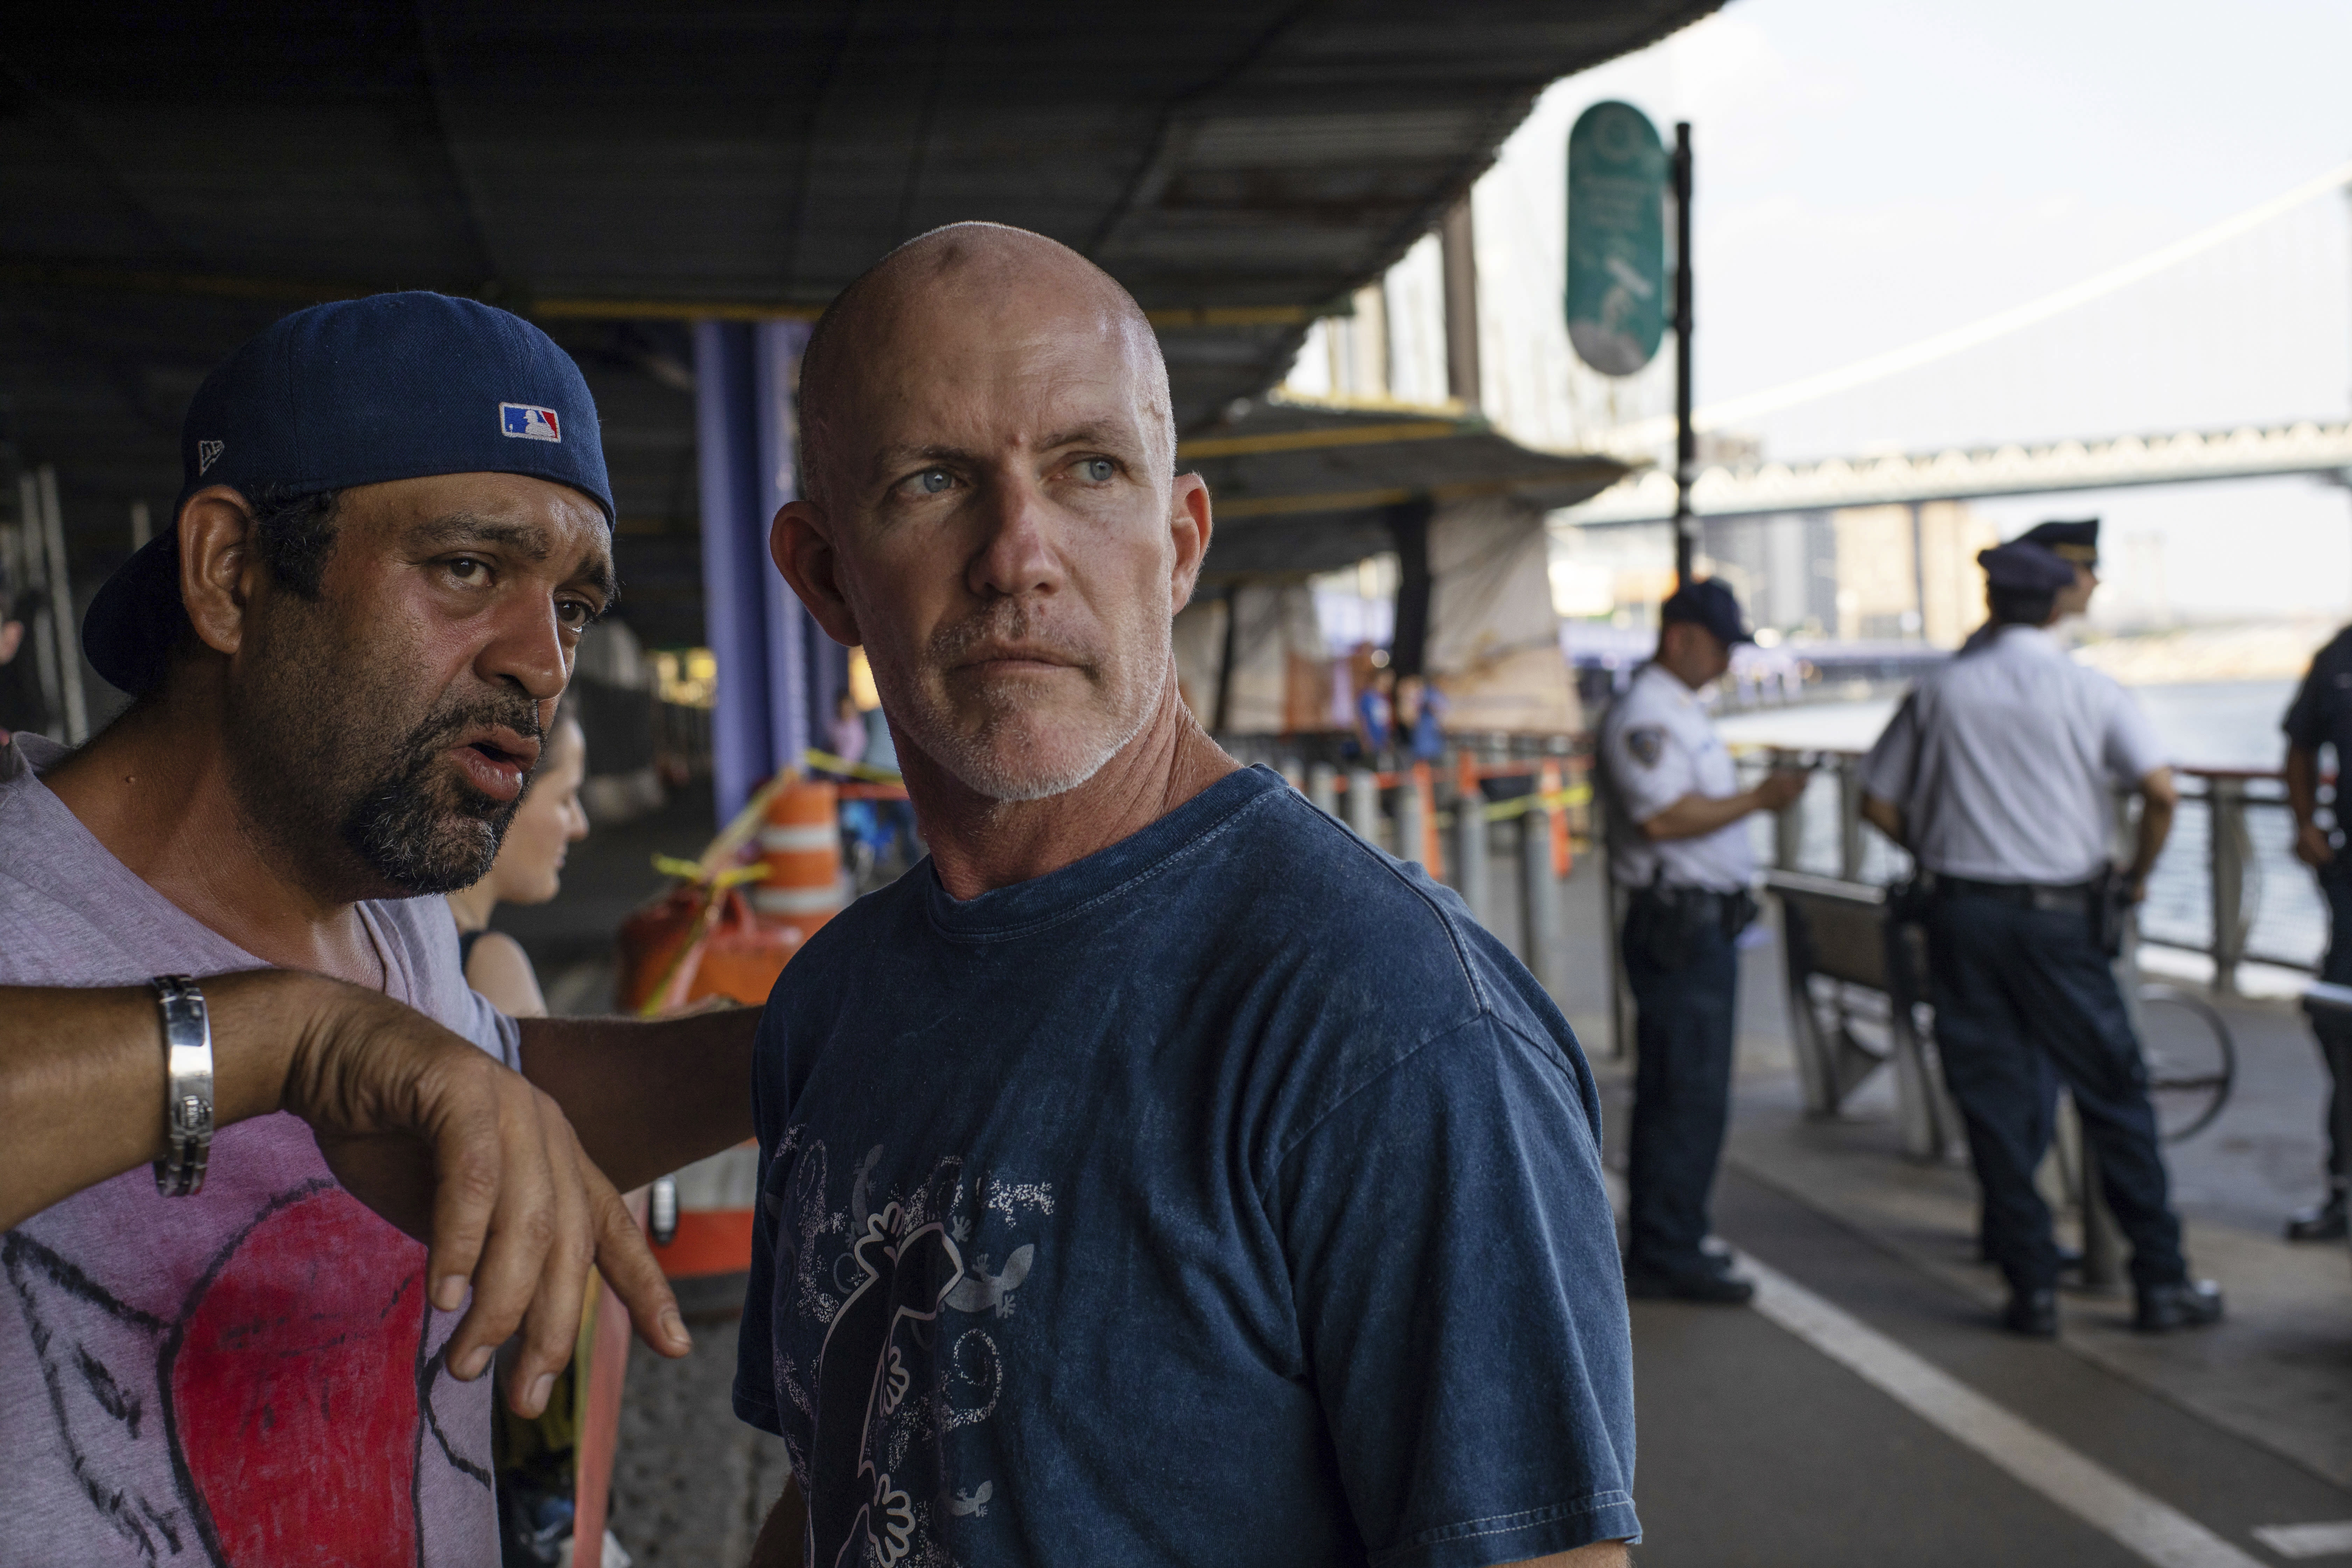 Monte Campbell, of Stillwater, Okla., right, stands under the Brooklyn Bridge in Manhattan after jumping into New York's East River to rescue a baby floating in the water, Sunday, Aug. 5, 2018. The baby was later pronounced dead and authorities are investigating. No parent or guardian was present at the scene and the child showed no signs of trauma, police said. (AP Photo/Robert Bumsted)